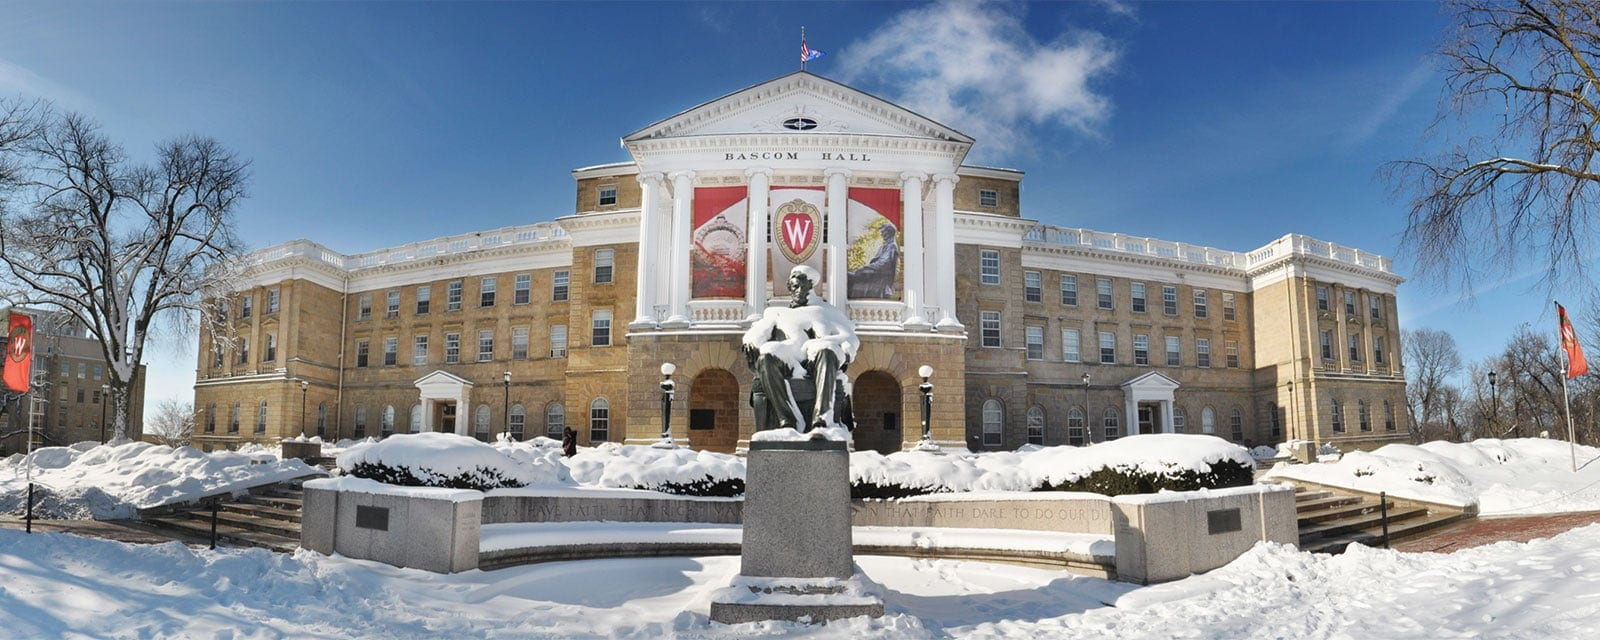 Snow on the Lincoln statue and Bascom Hall